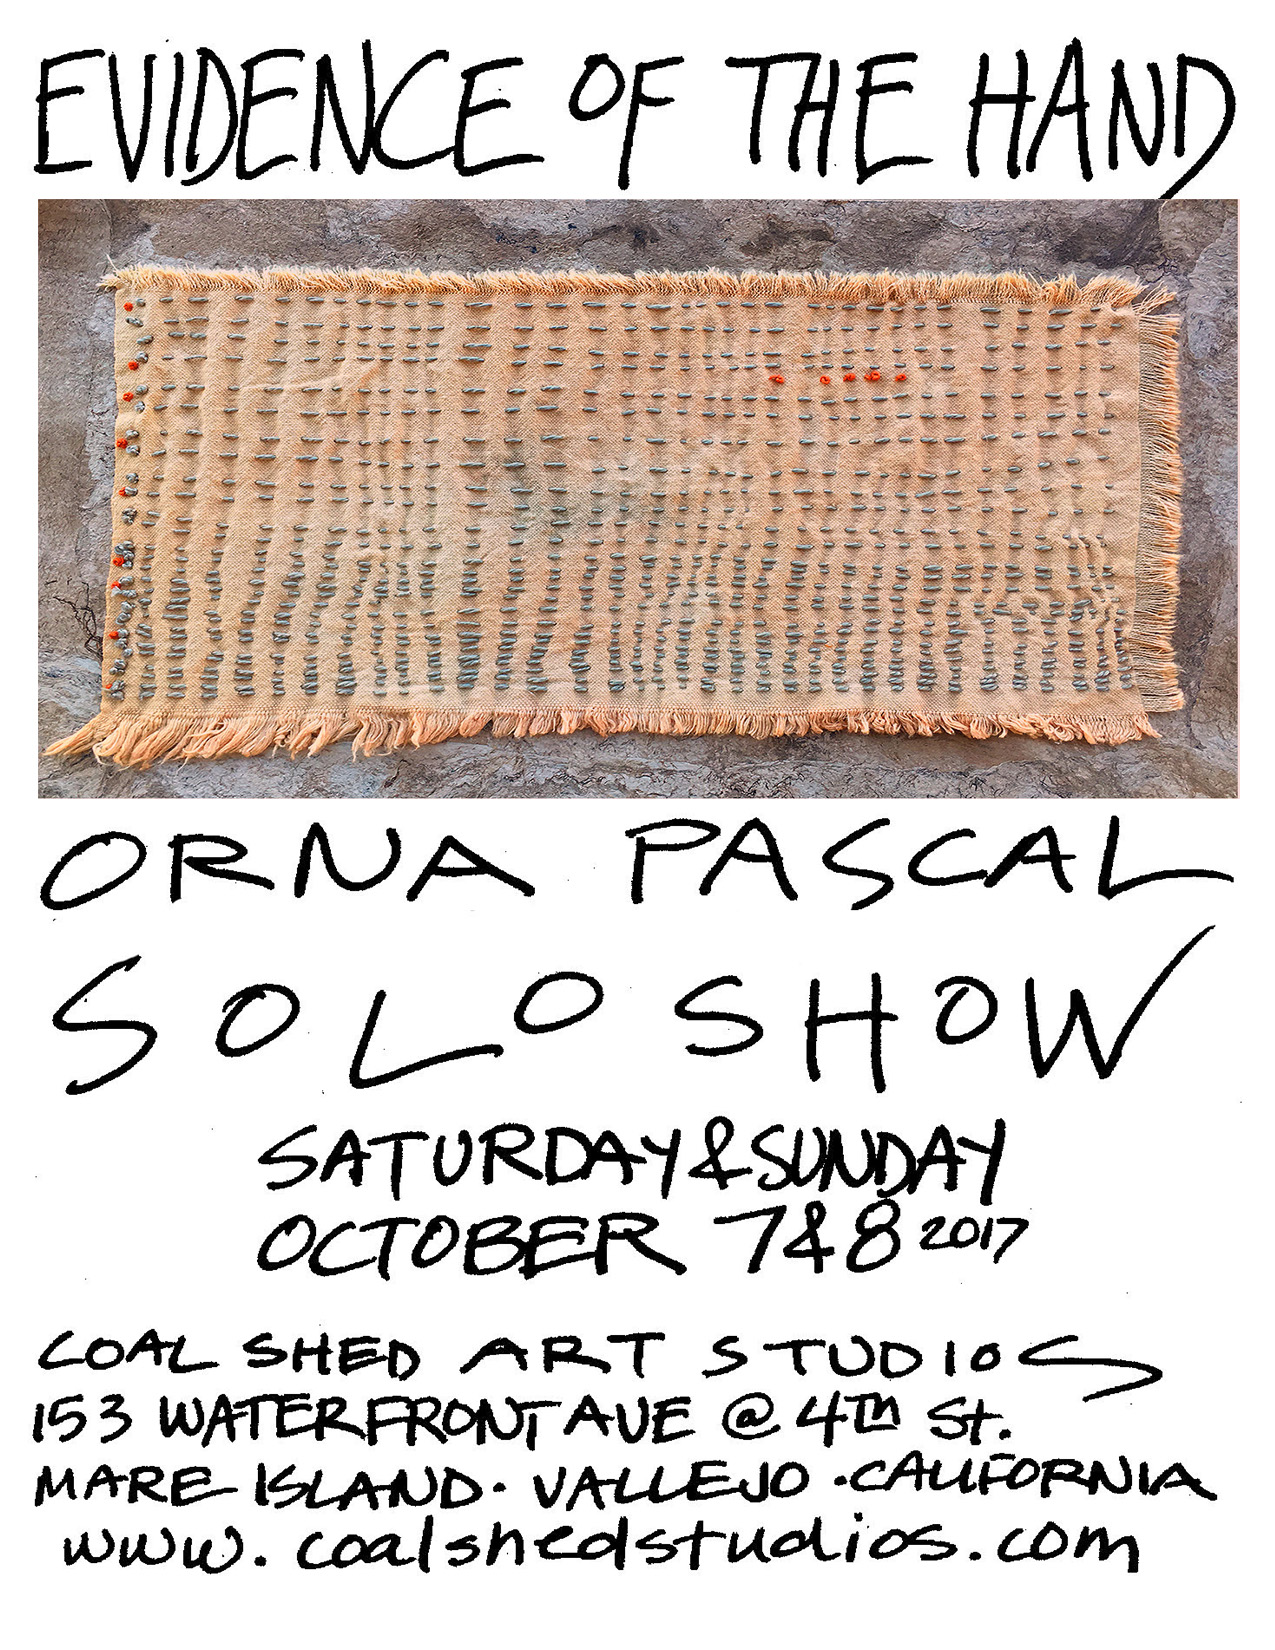 Evidence of the Hand; Orna Pascal Solo Show